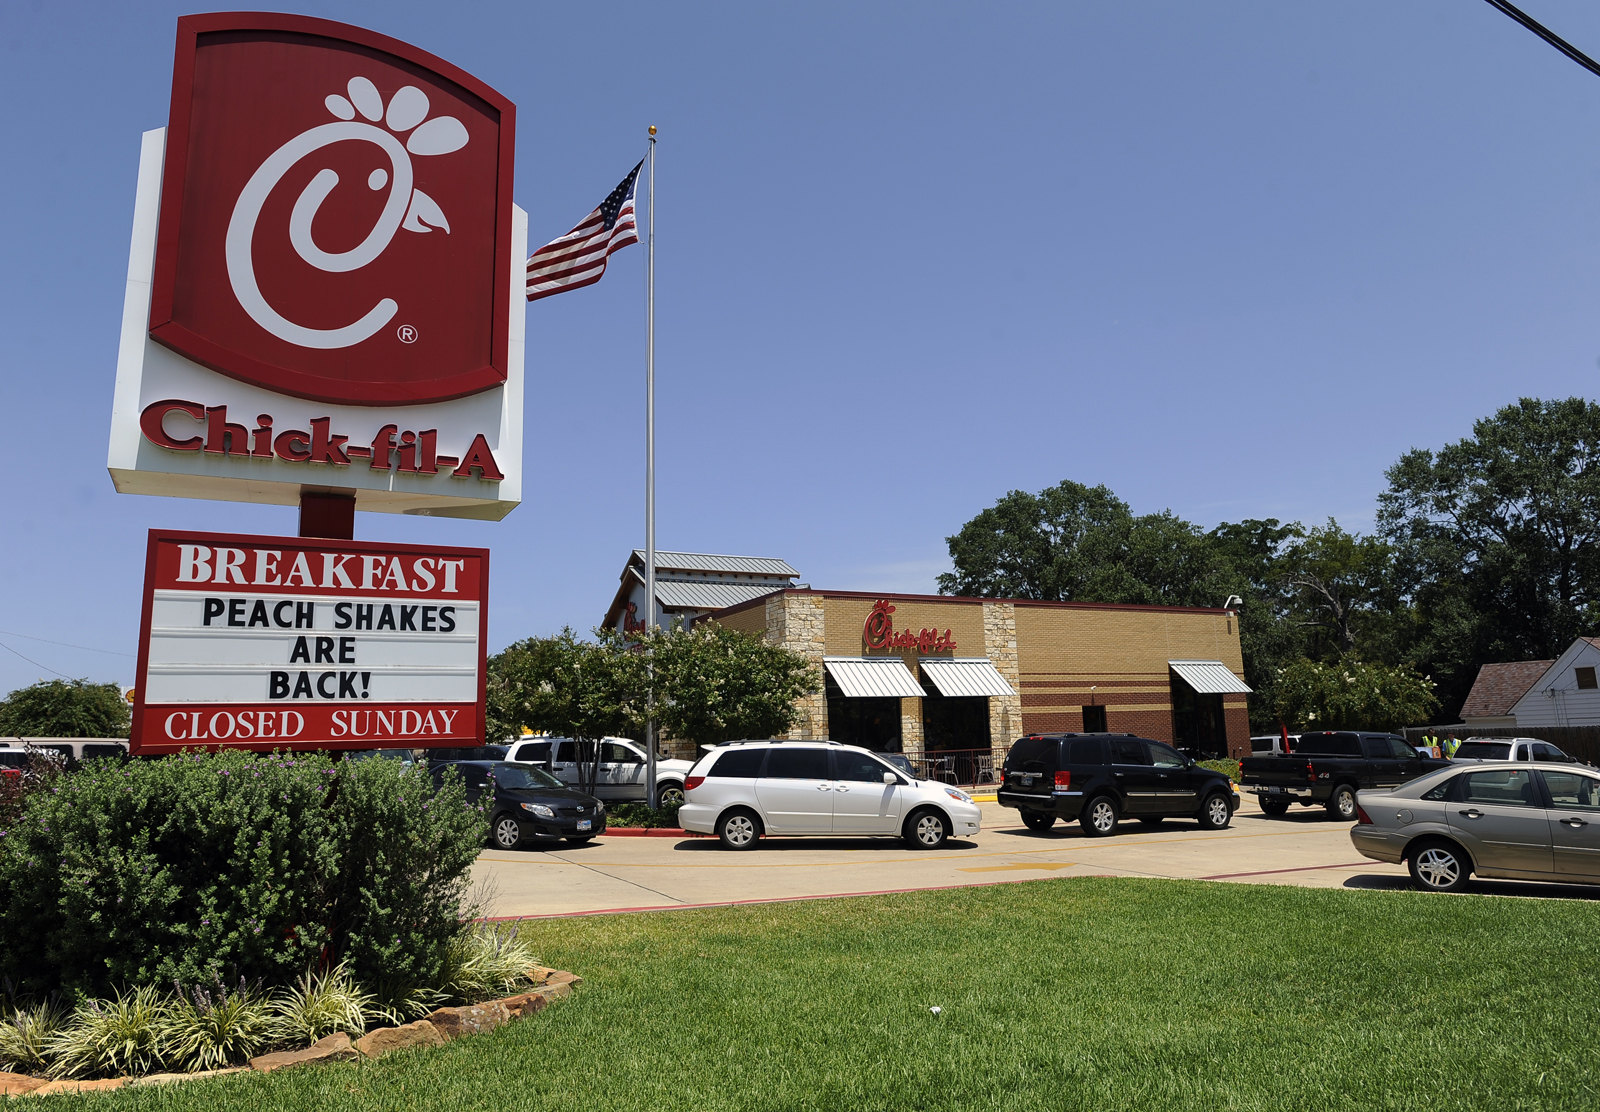 Cars circle around the local Chick-fil-A restaurant Wednesday, Aug. 1, 2012, in honor of Chick-fil-A Appreciation Day in Nacogdoches, Texas.